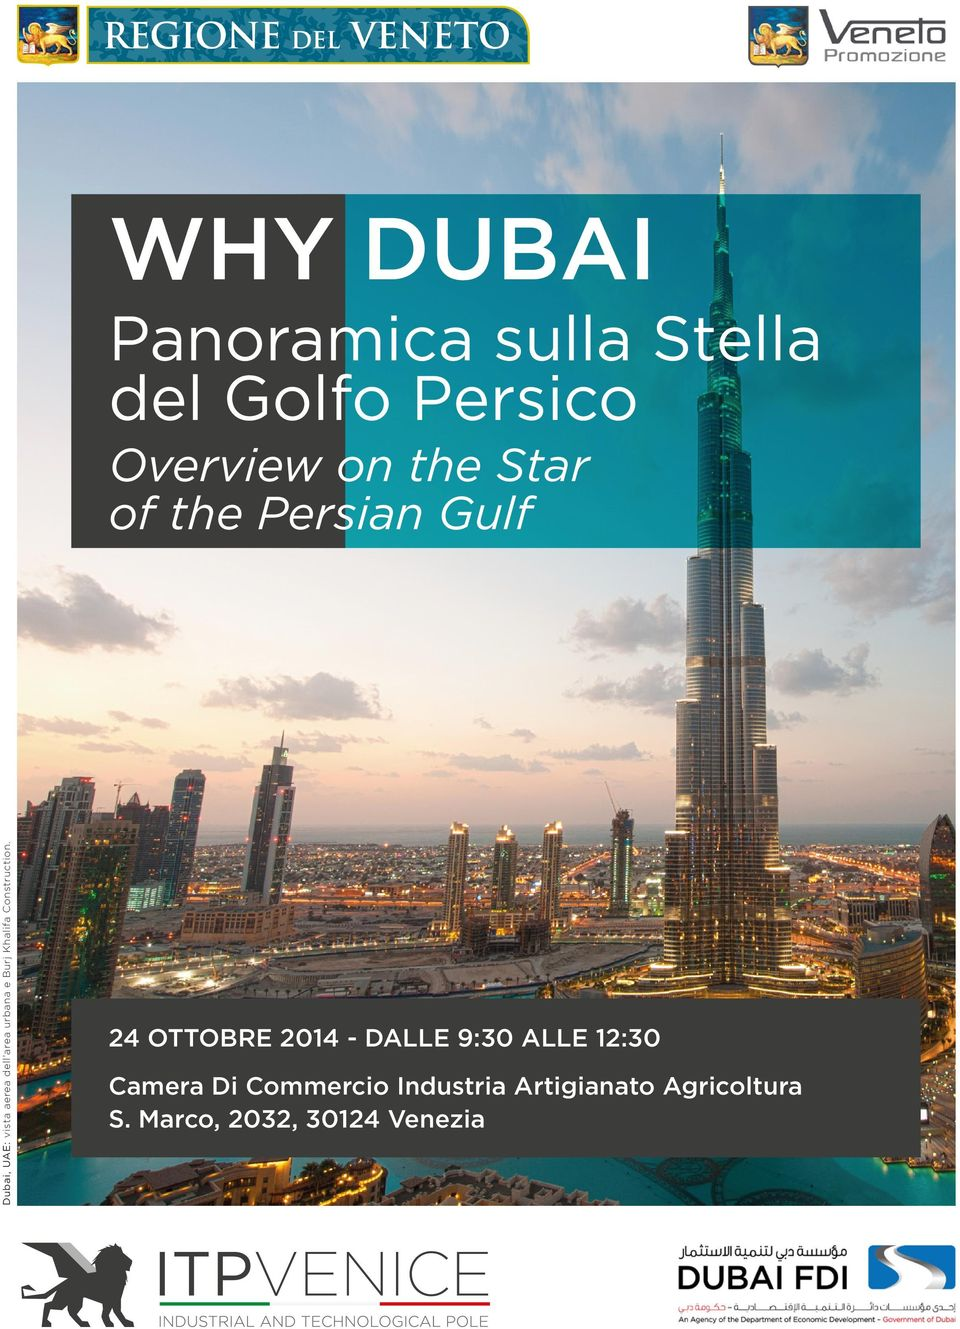 Overview on the Star of the Persian Gulf 24 OTTOBRE 2014 - DALLE 9:30